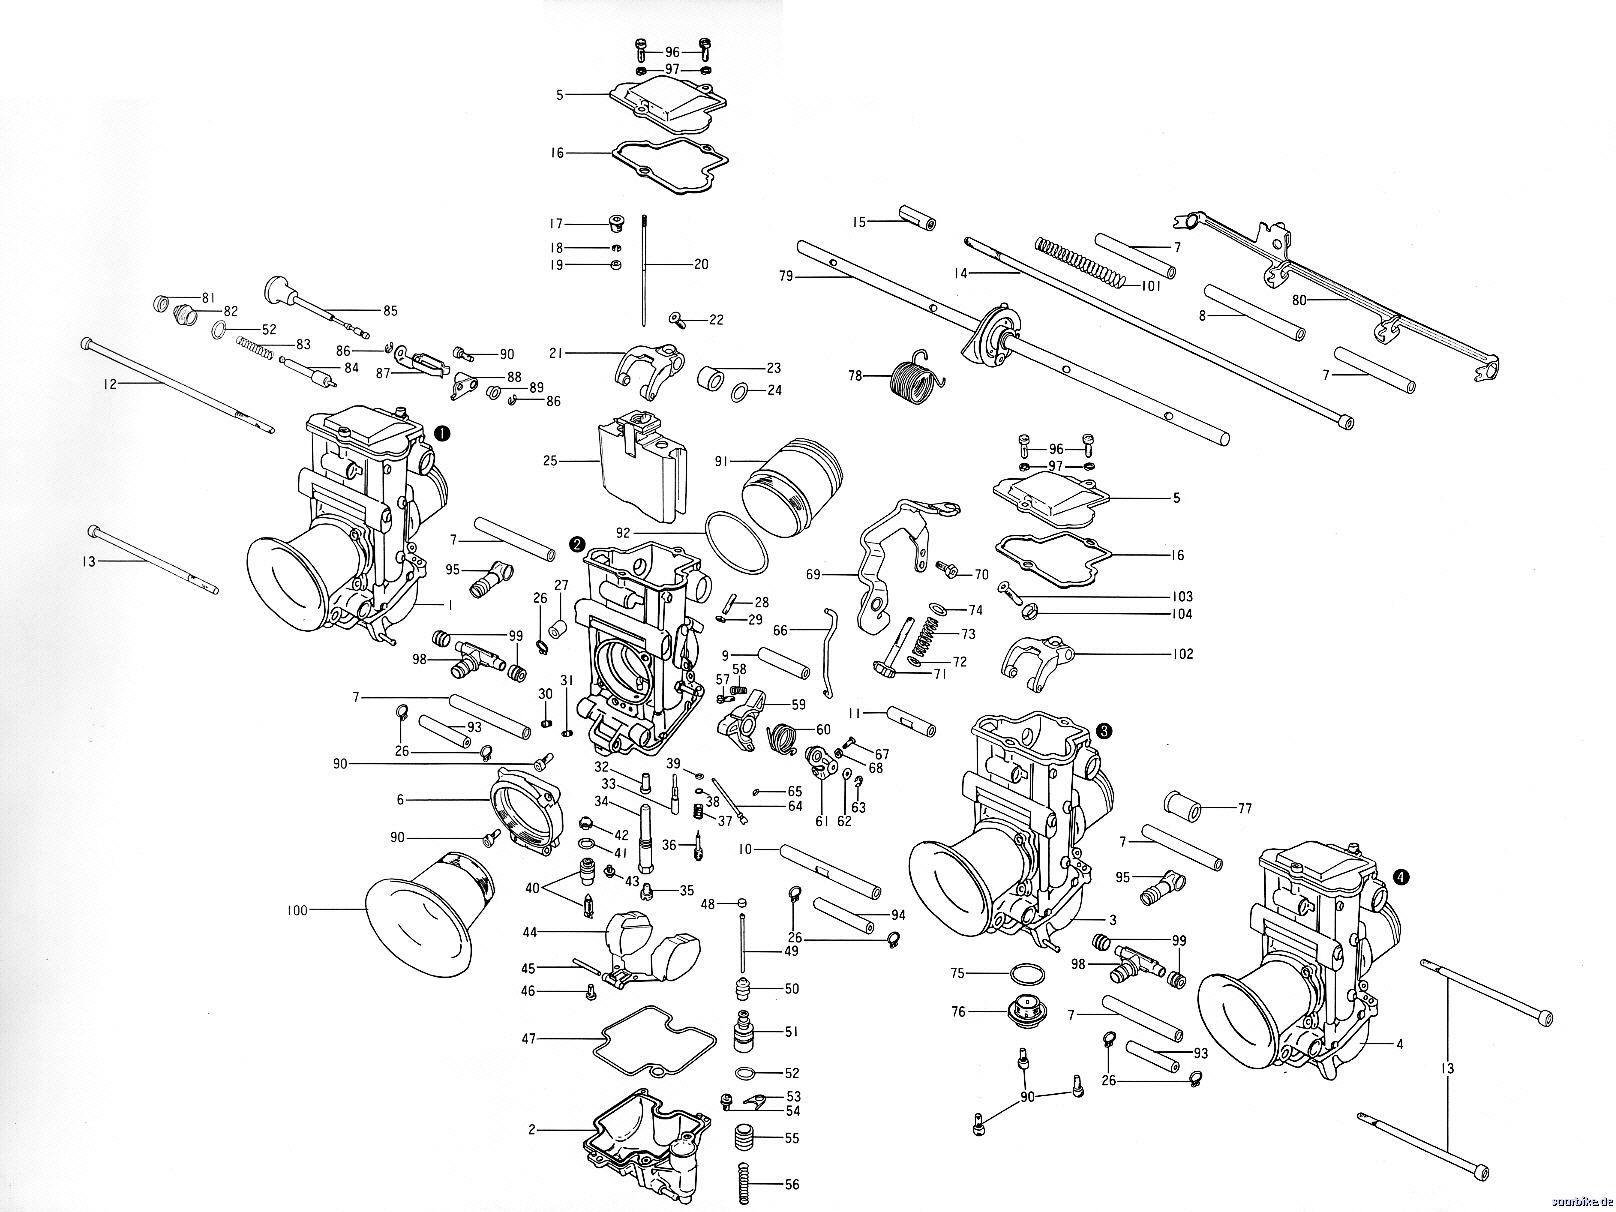 Tw200 Carburetor Diagram Wiring And Engine 93 Yamaha Virago 1988 Moreover 5 As Well Schematic Besides